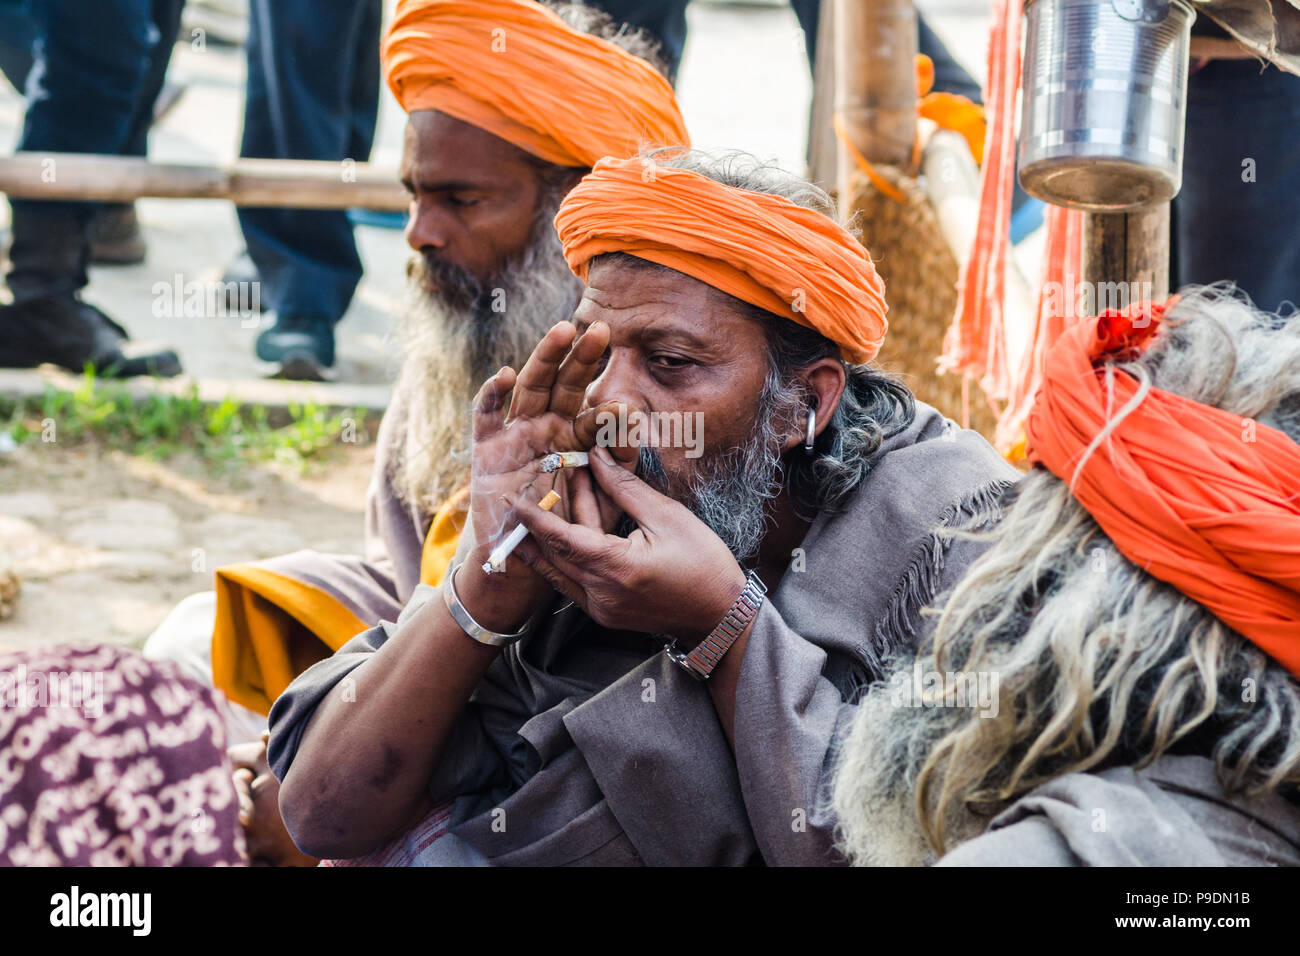 Sadhu smoking weed during Maha Shivaratri, Pashupatinath temple, Nepal - Stock Image